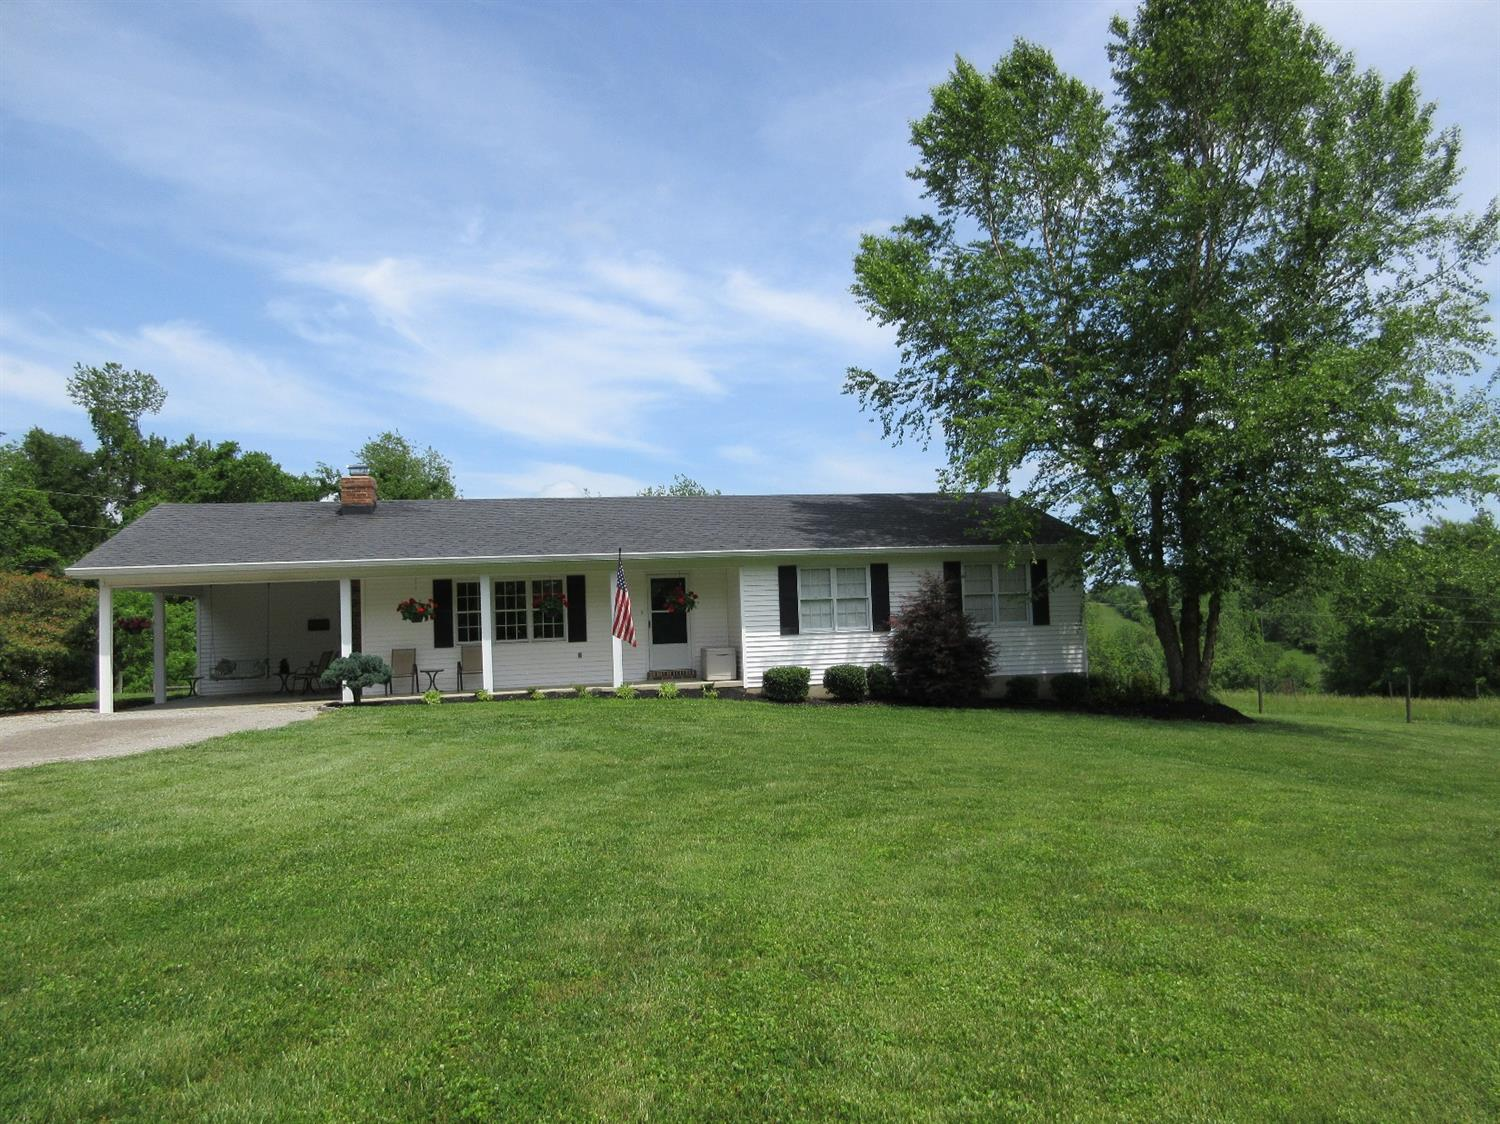 Home For Sale at 3209 Clintonville Rd, Winchester, KY 40391